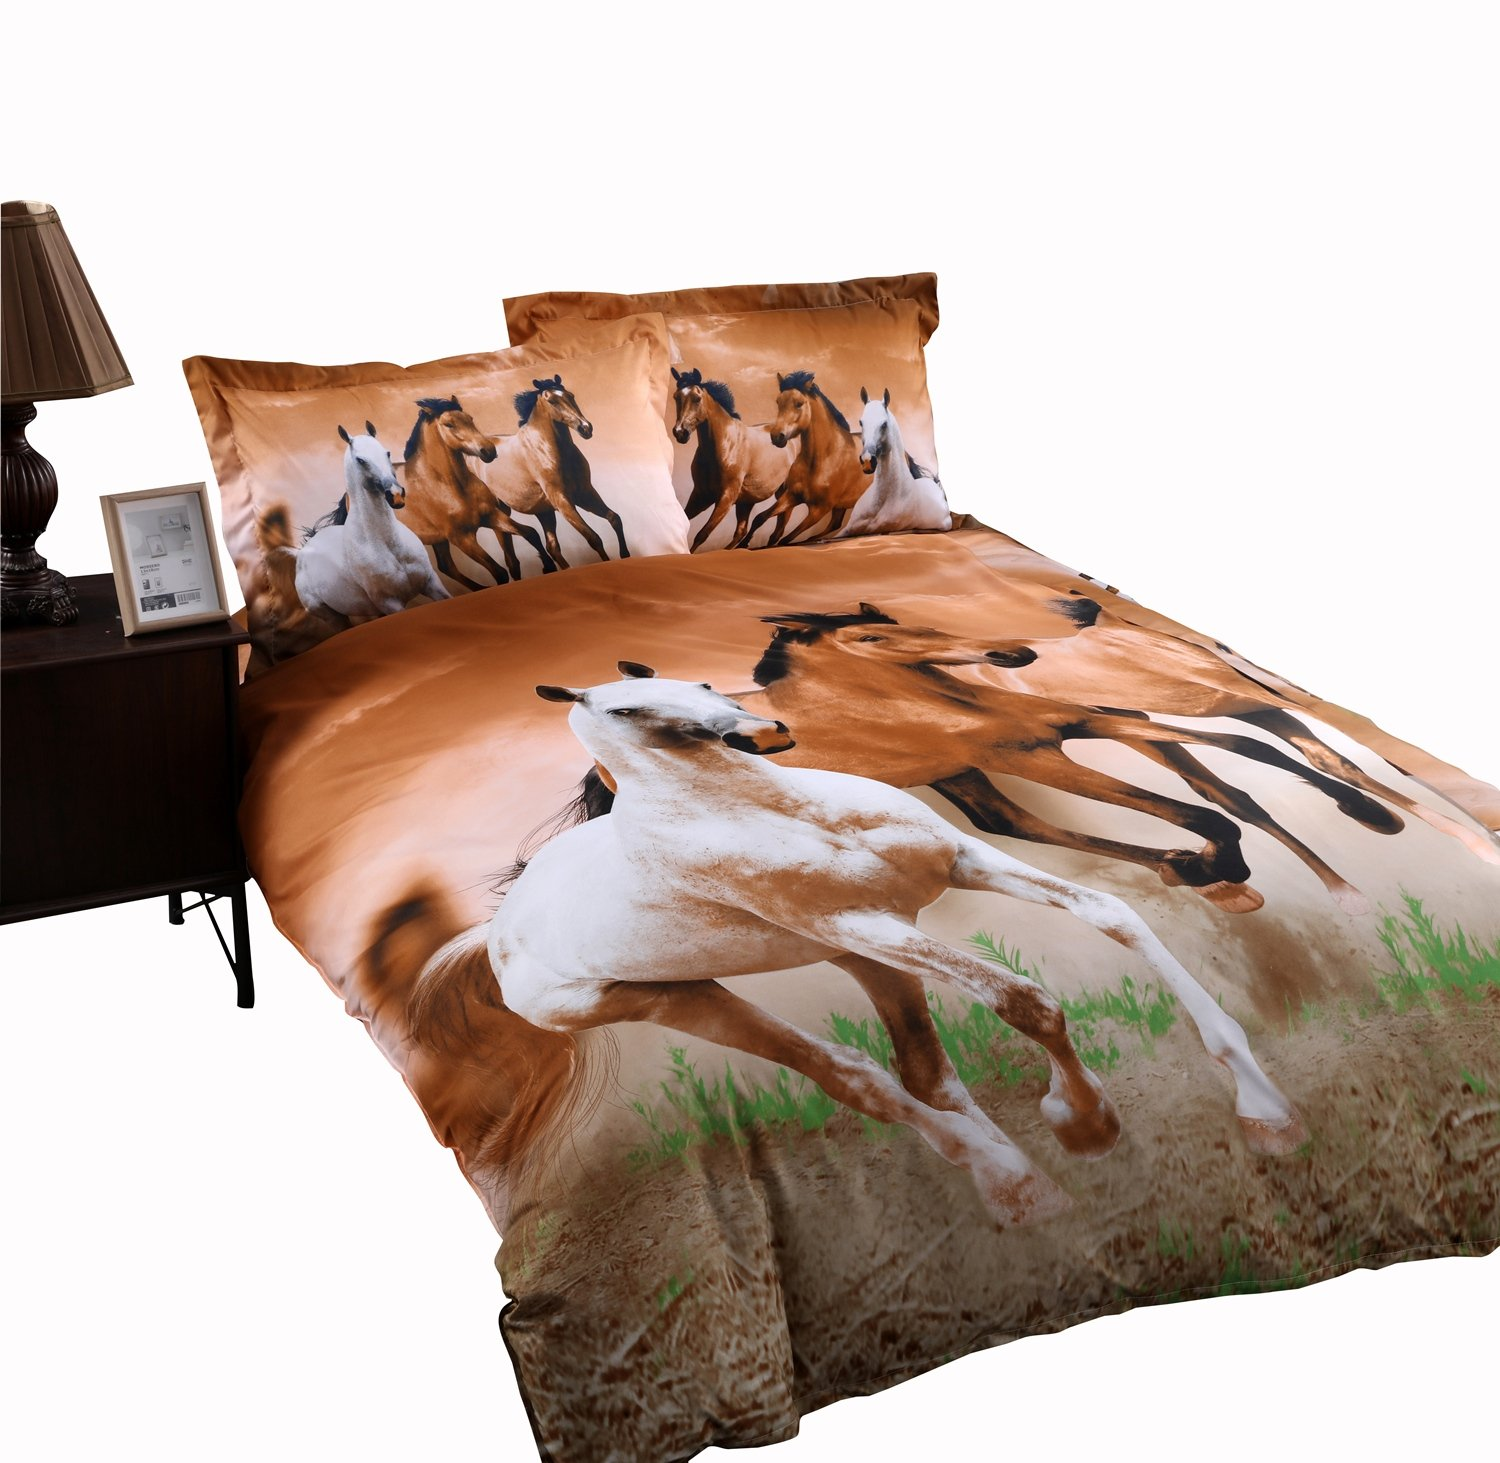 Wowelife Horse Bedding Sets Kids Bedding Sets Twin Size 4 Pieces with Duvet Cover, Flat Sheet, and 2 Pillow Cases(Comforter Not Included)